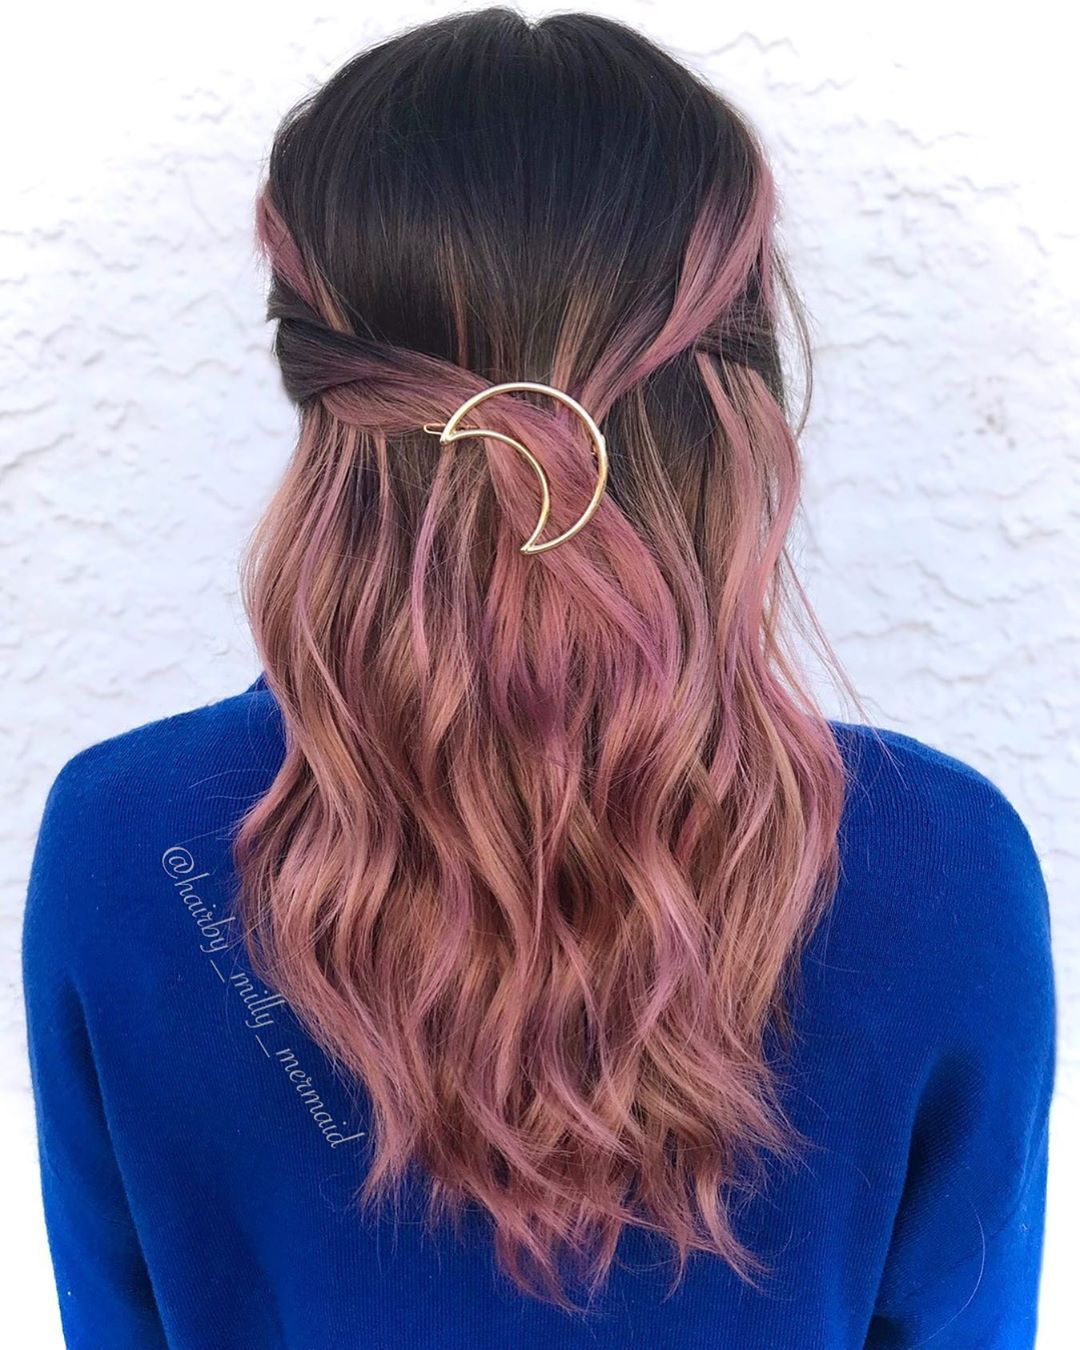 Rose Gold Tint Hair Color Idea